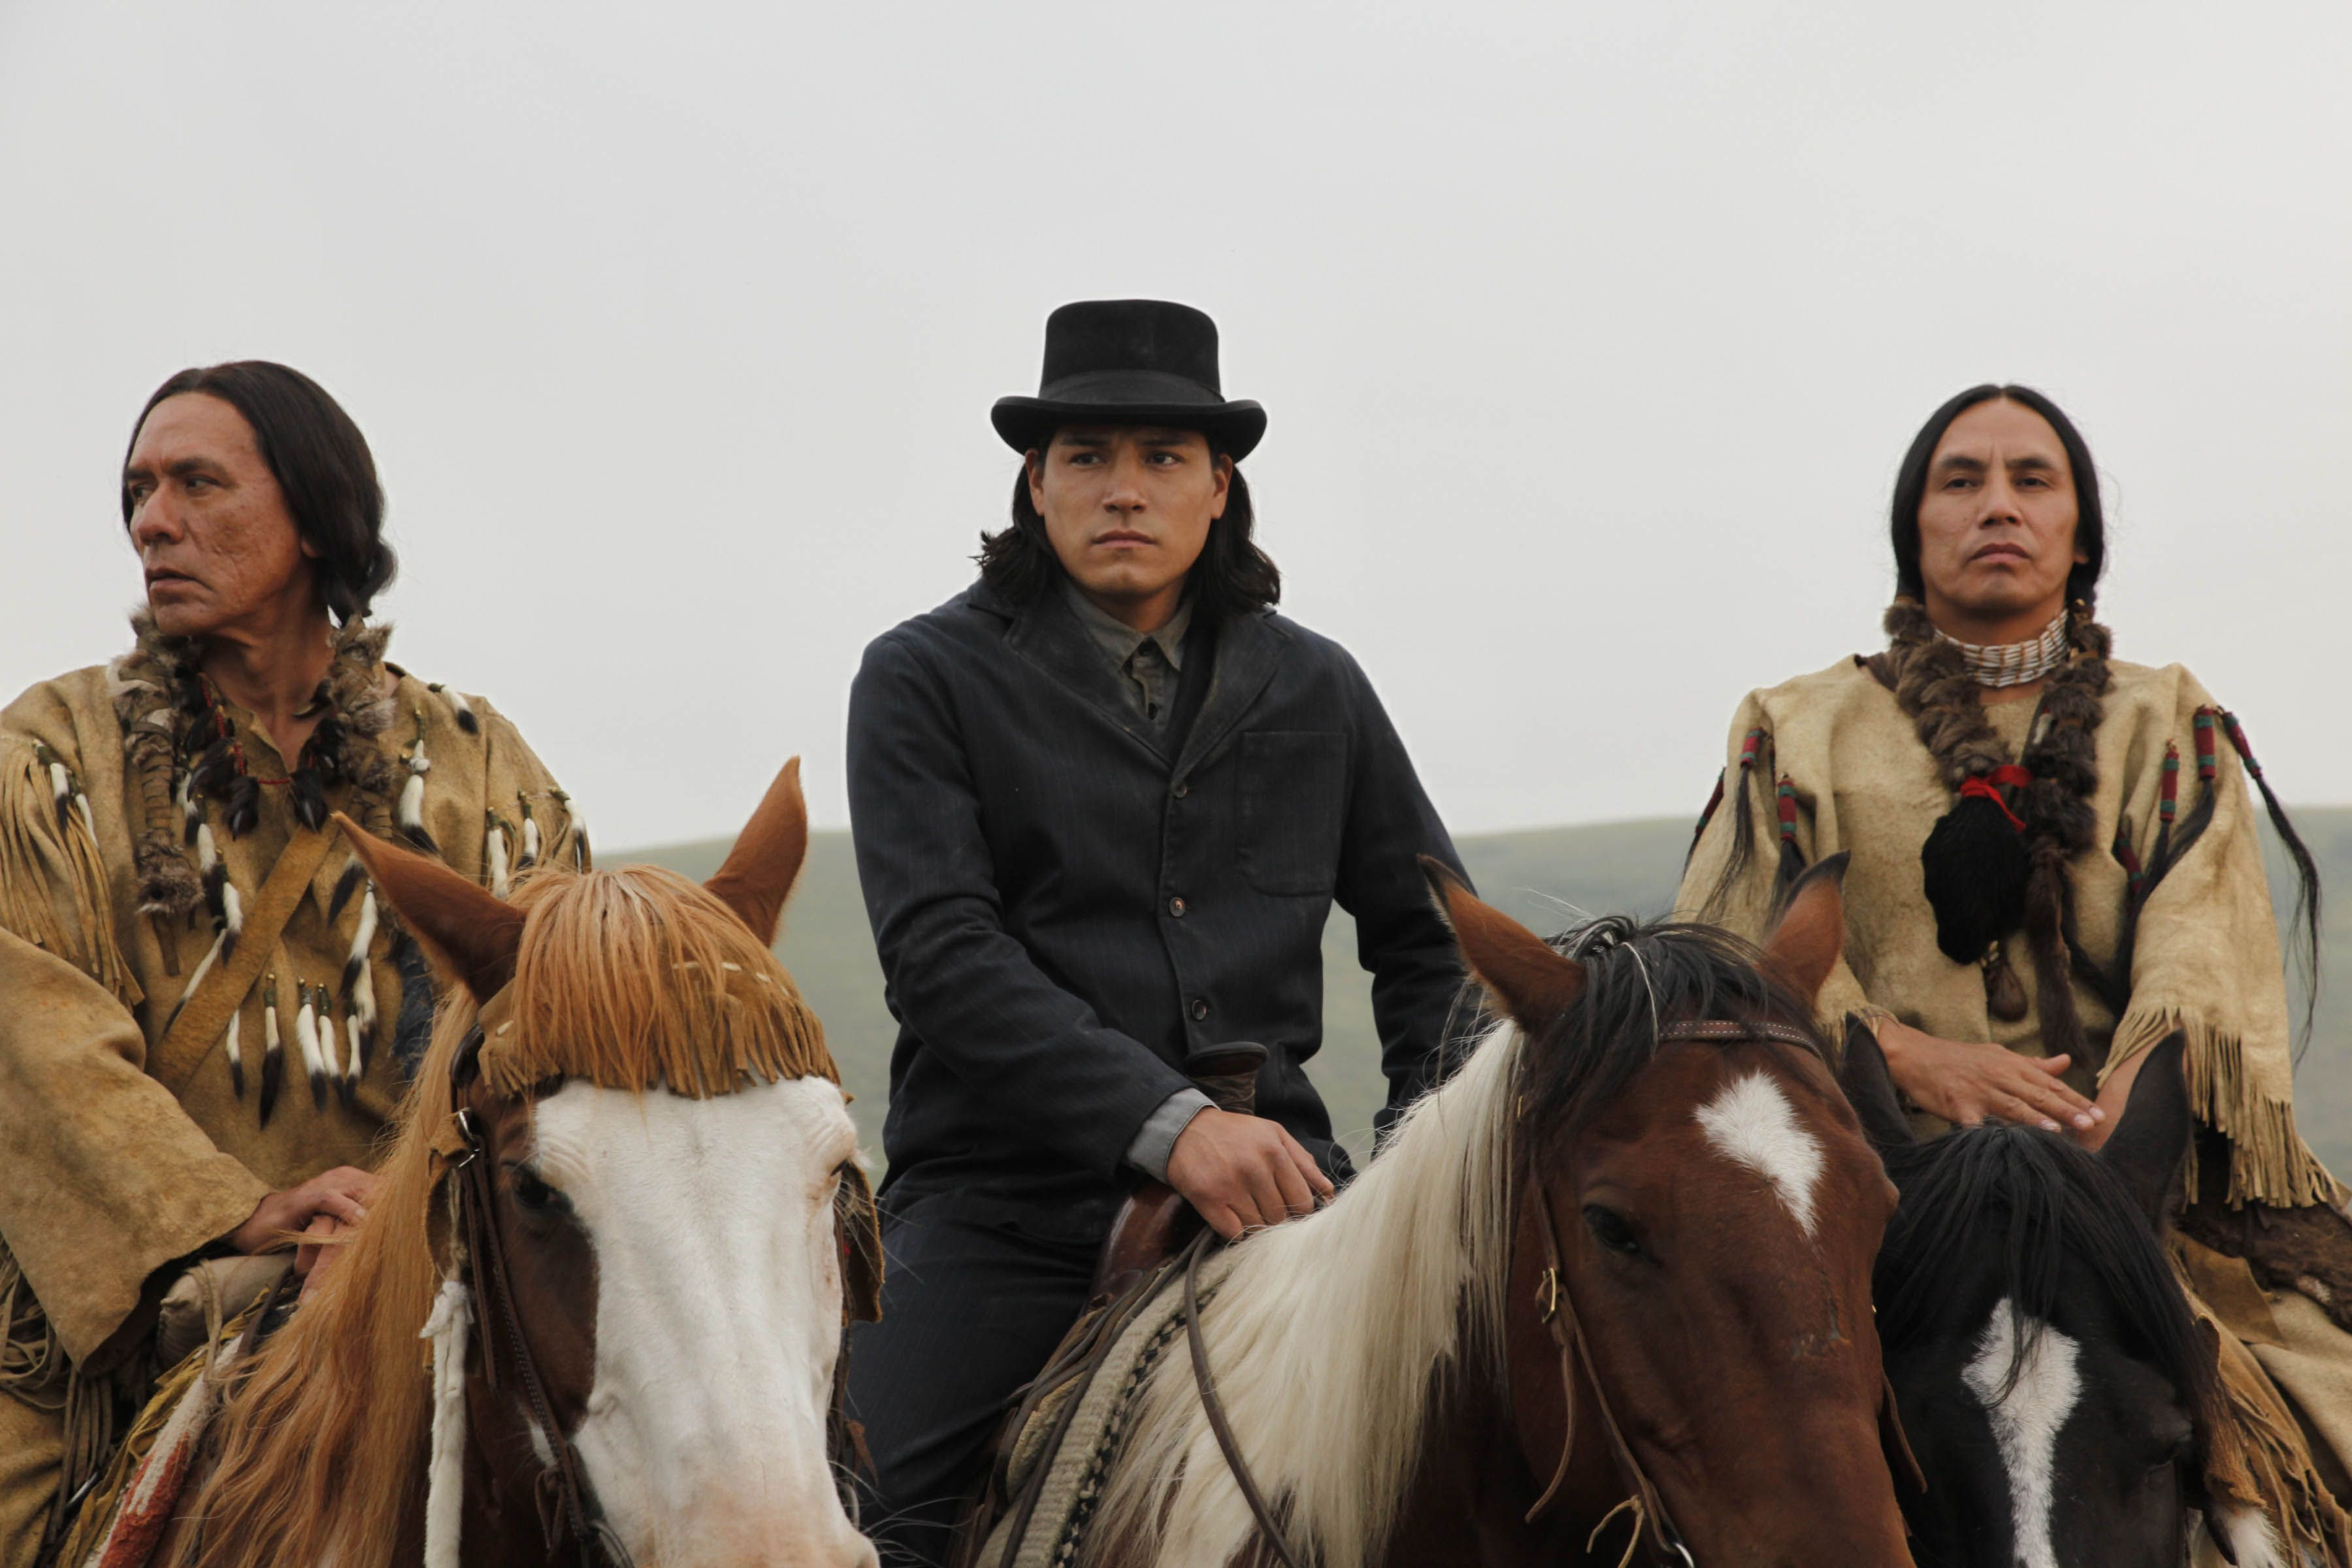 Hell on Wheels - Season 1 Episode 1 Still